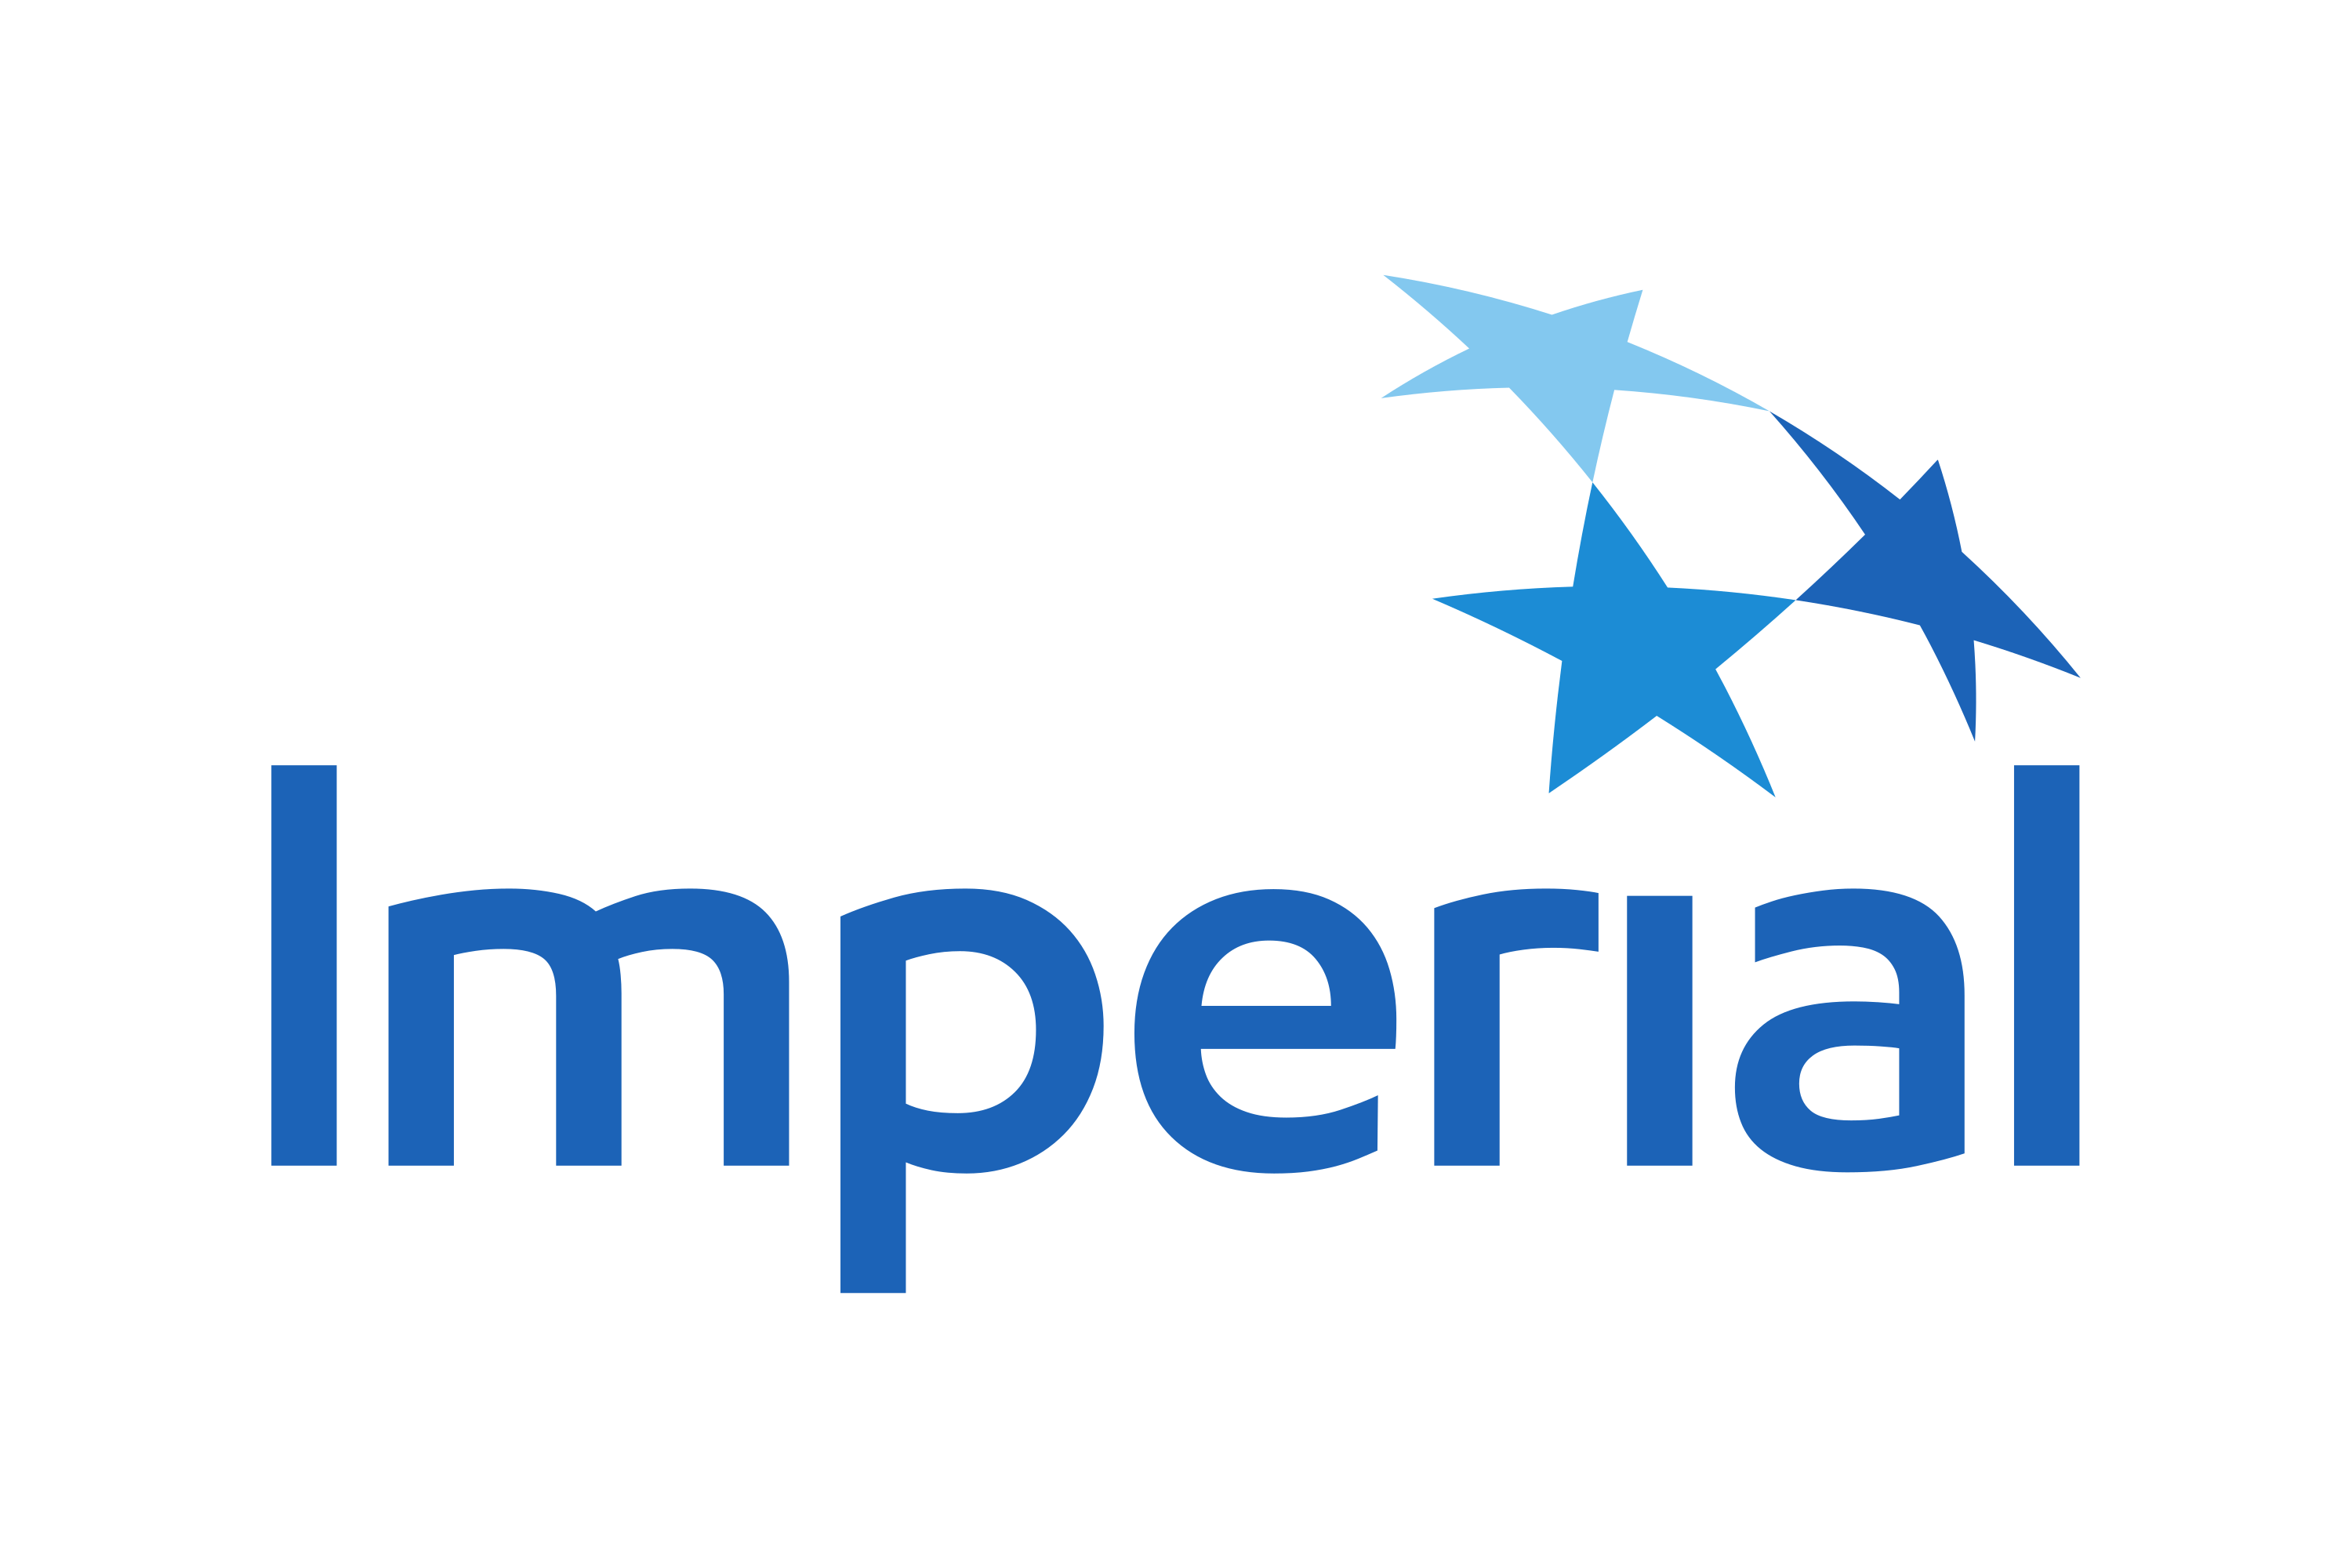 Imperial Oil